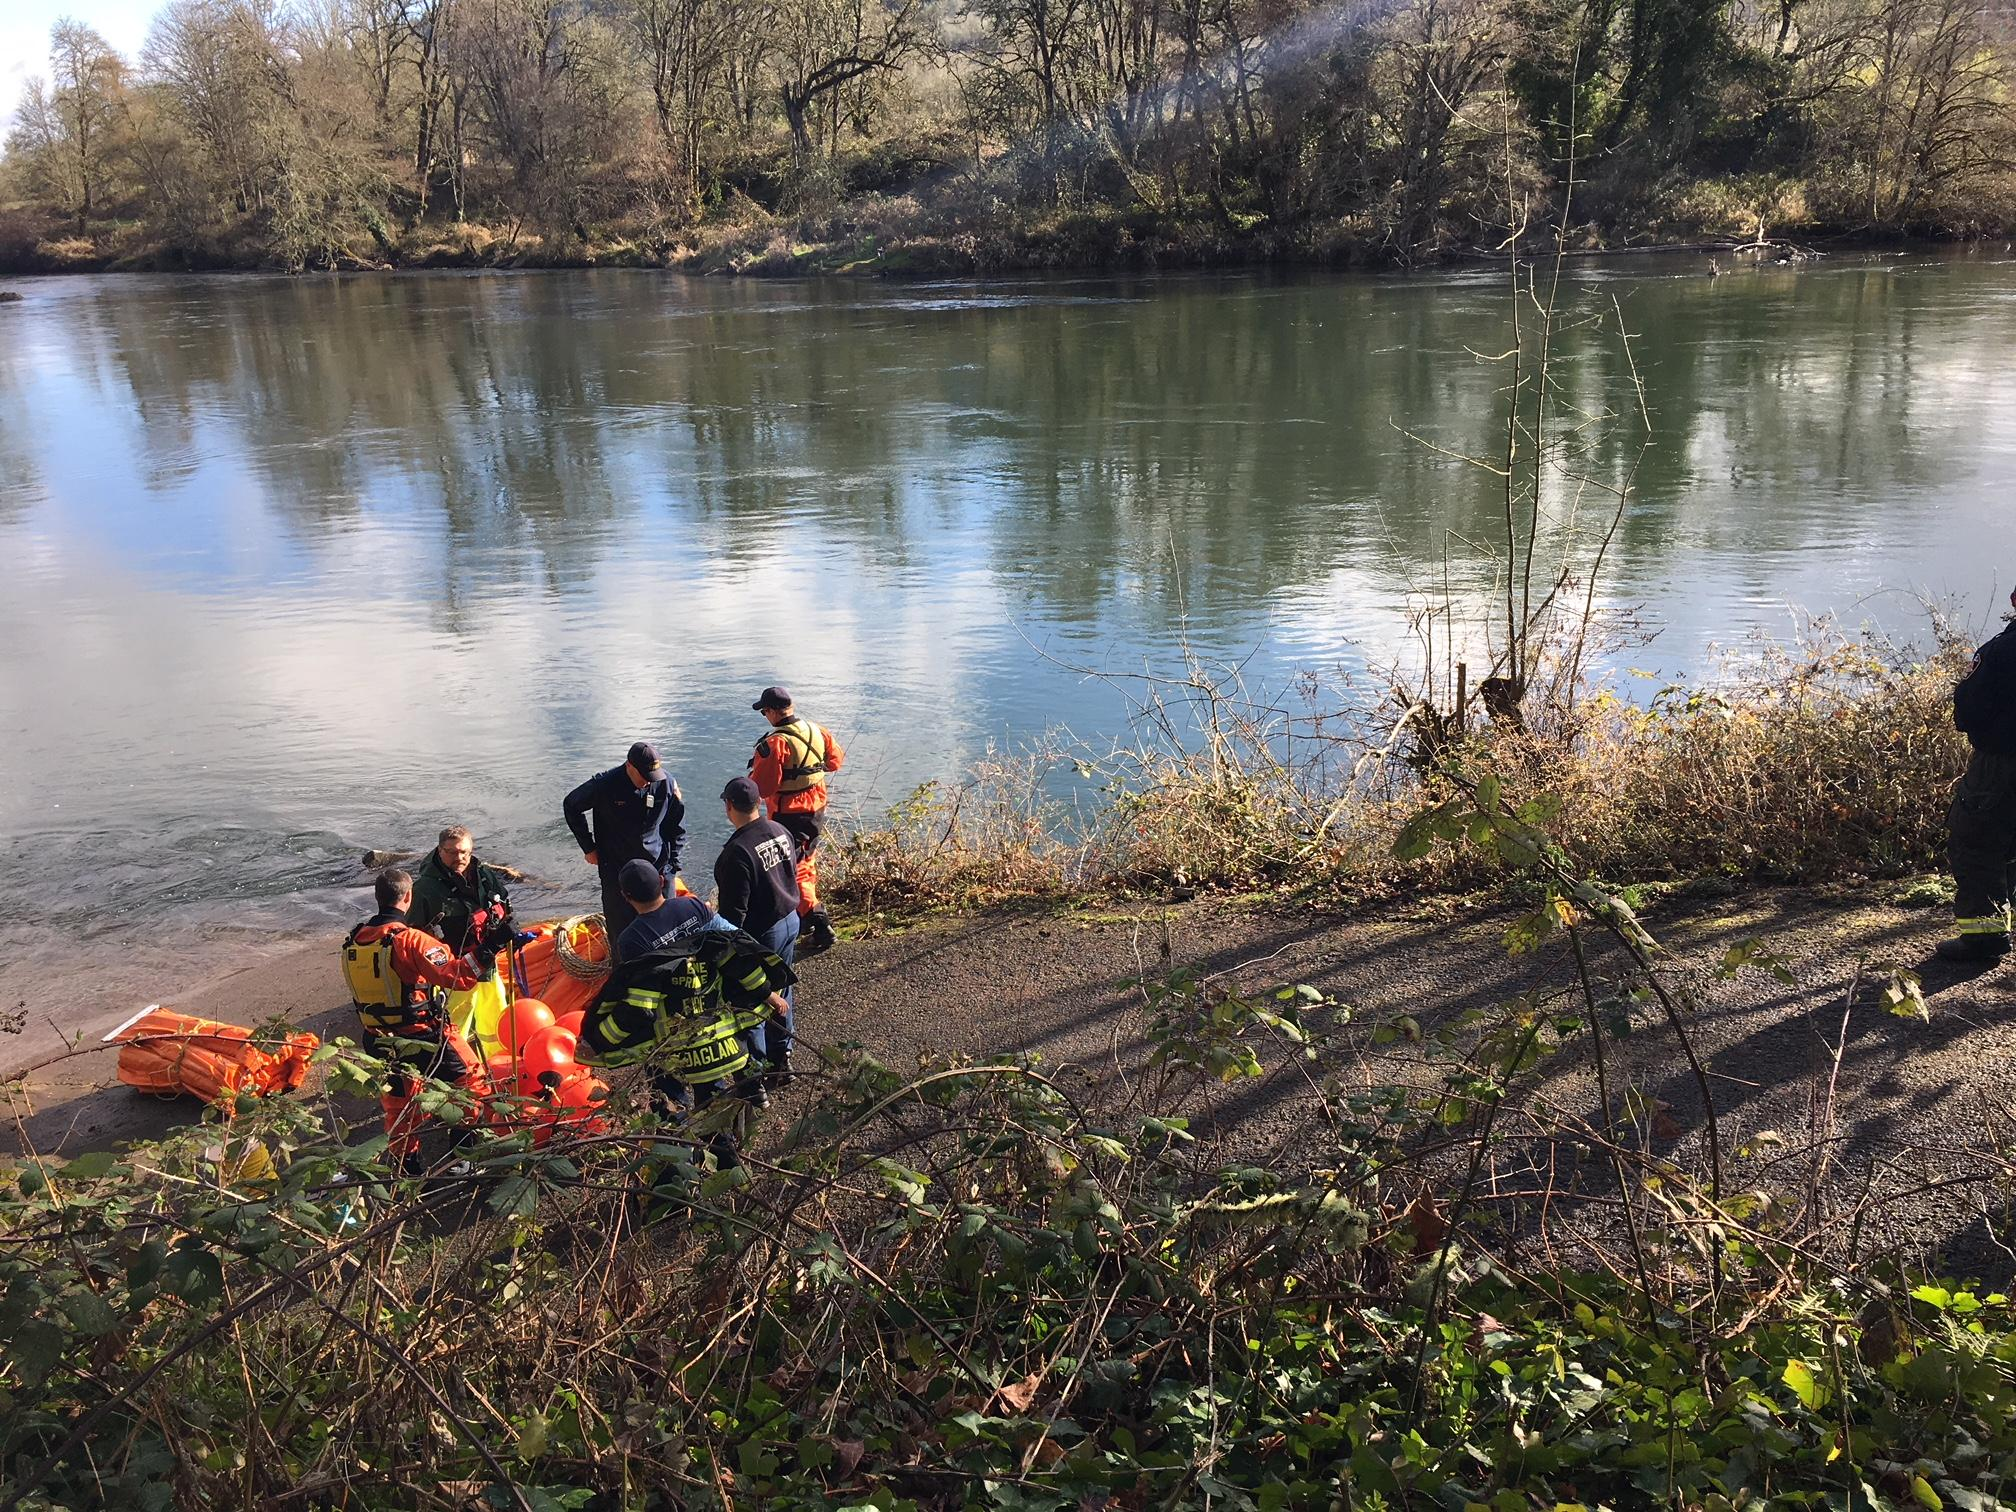 A petroleum-based fluid leaked into the McKenzie River about 800 feet downstream from the drinking water intake for over 200,000 people, the Eugene Water & Electric Board said. The spill has been cleaned up, and there is no threat to the water supply, according to Department of Environmental Quality staff and hazardous materials cleanup crews at the scene. (SBG)